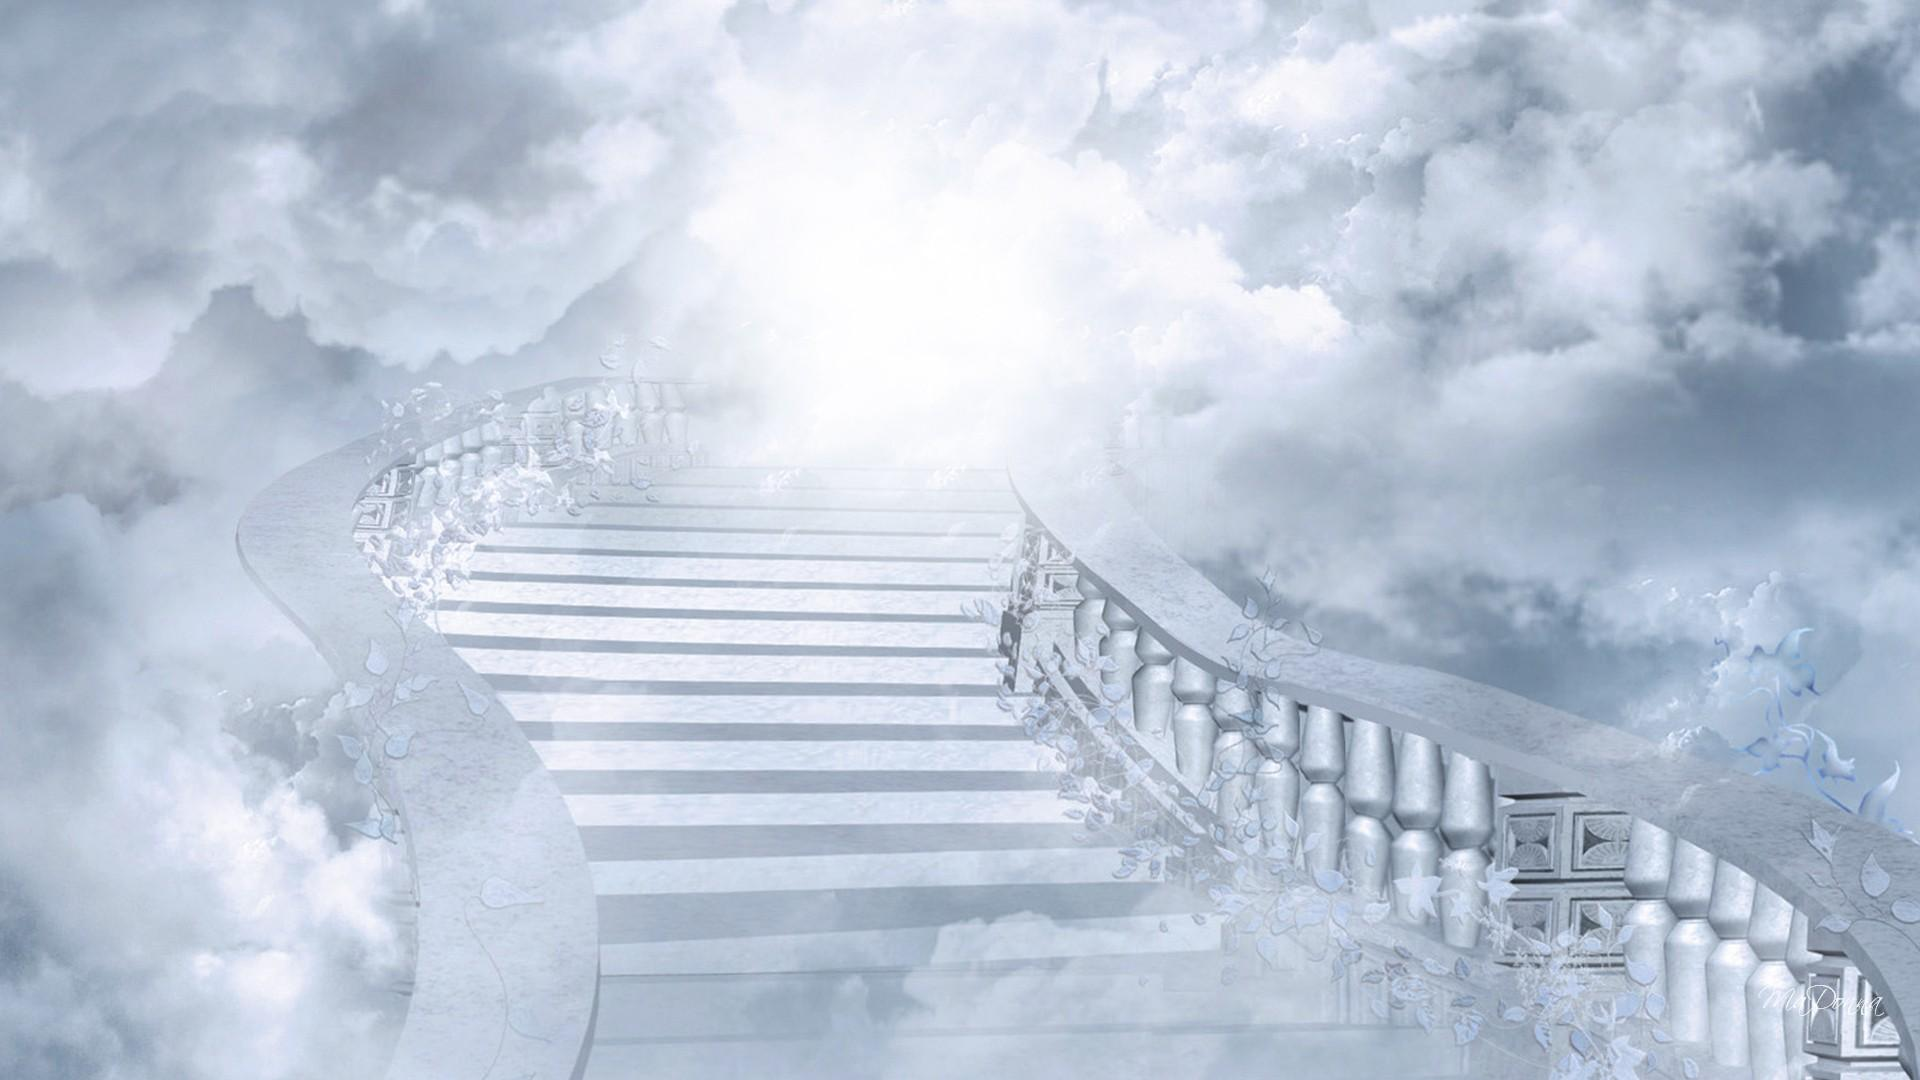 heaven gate wallpaper - photo #3